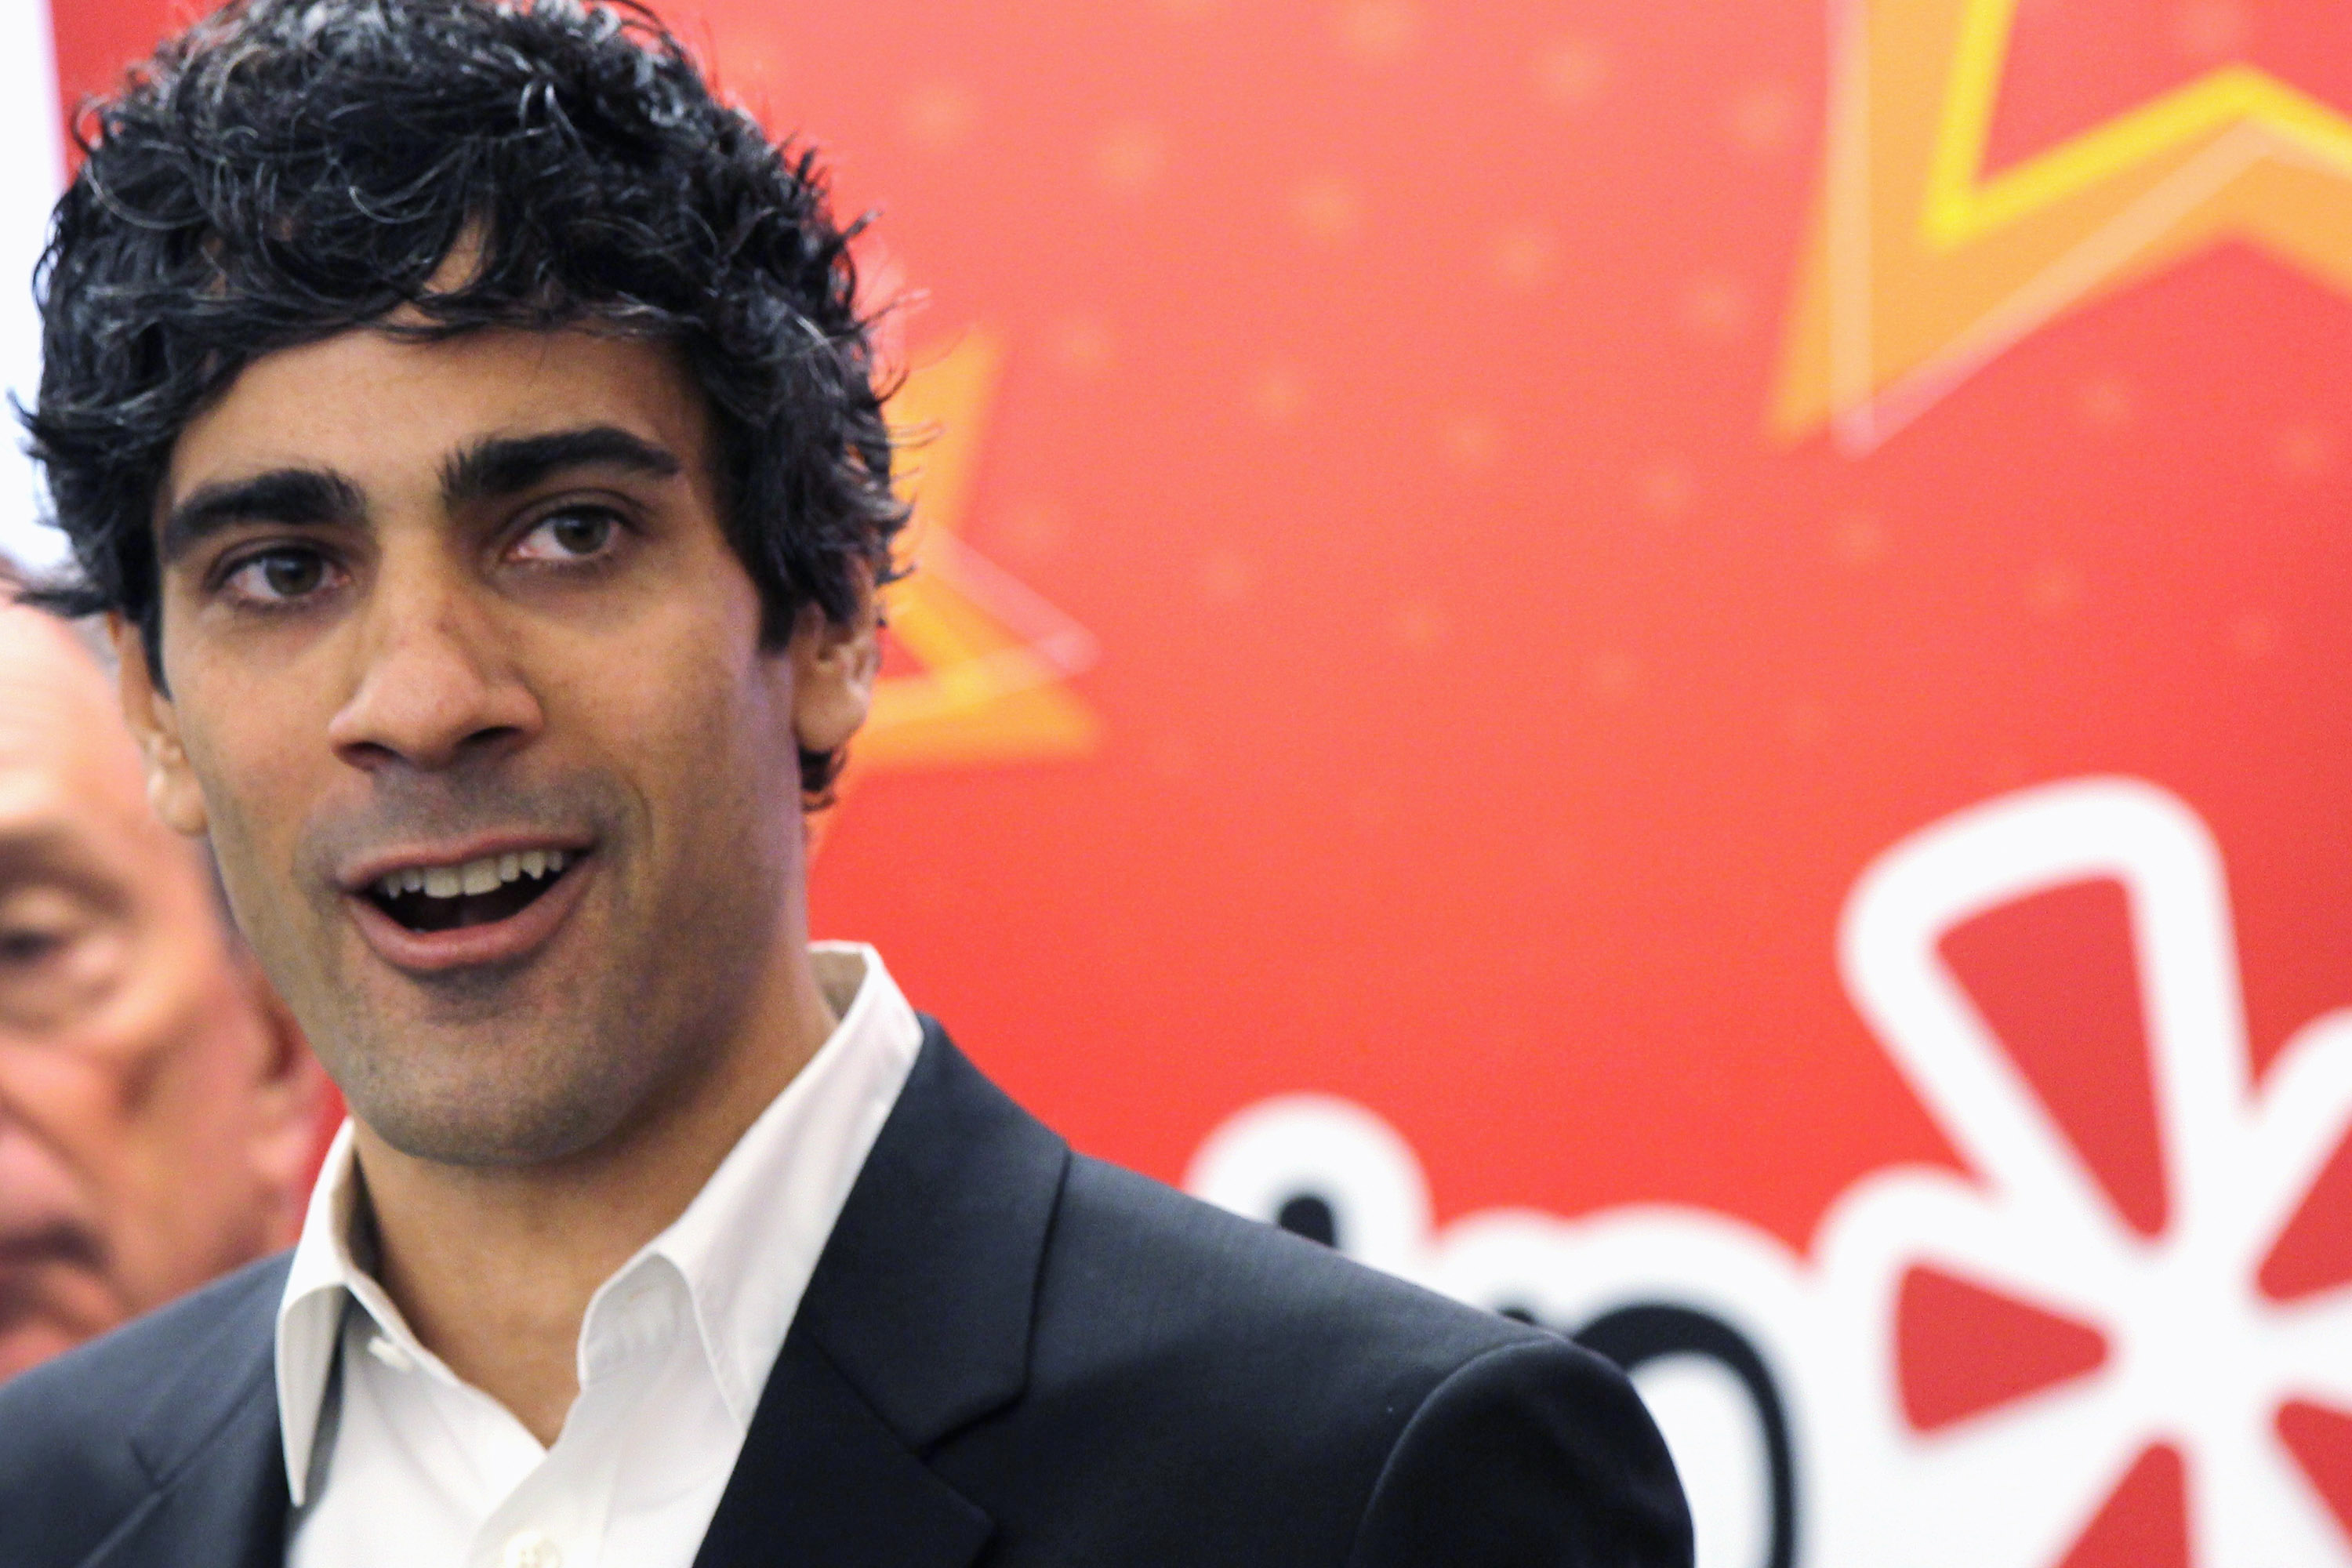 Yelp Employee Fired After Writing Scathing Critique of the Company